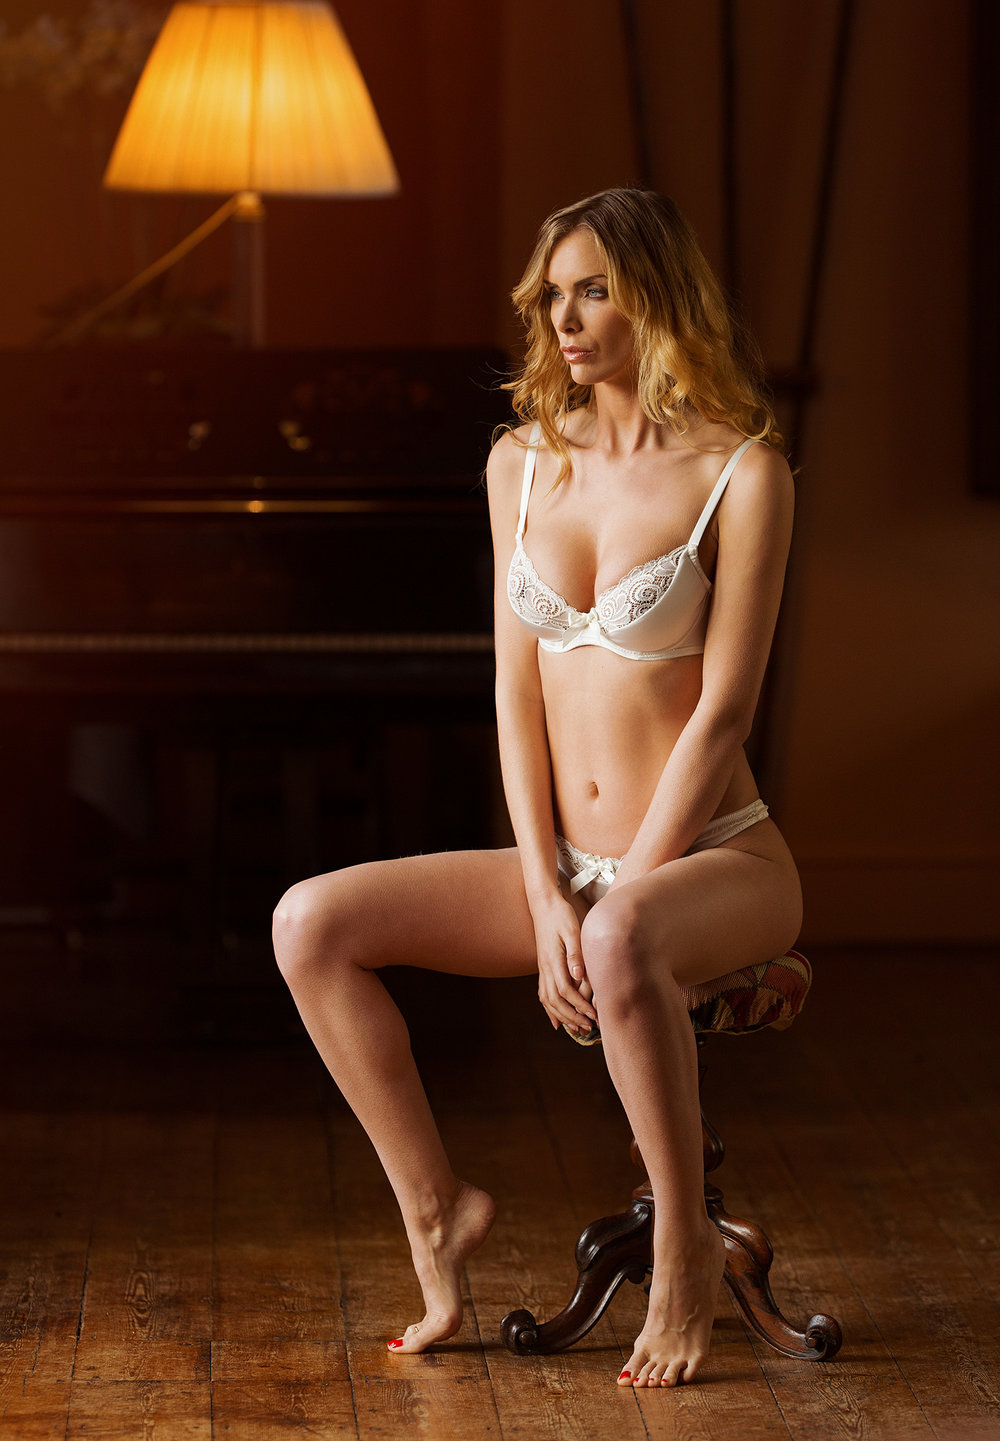 Emma Harris Lingerie editorial photoshoot by Karl Bratby at Holme Pierrepont Hall